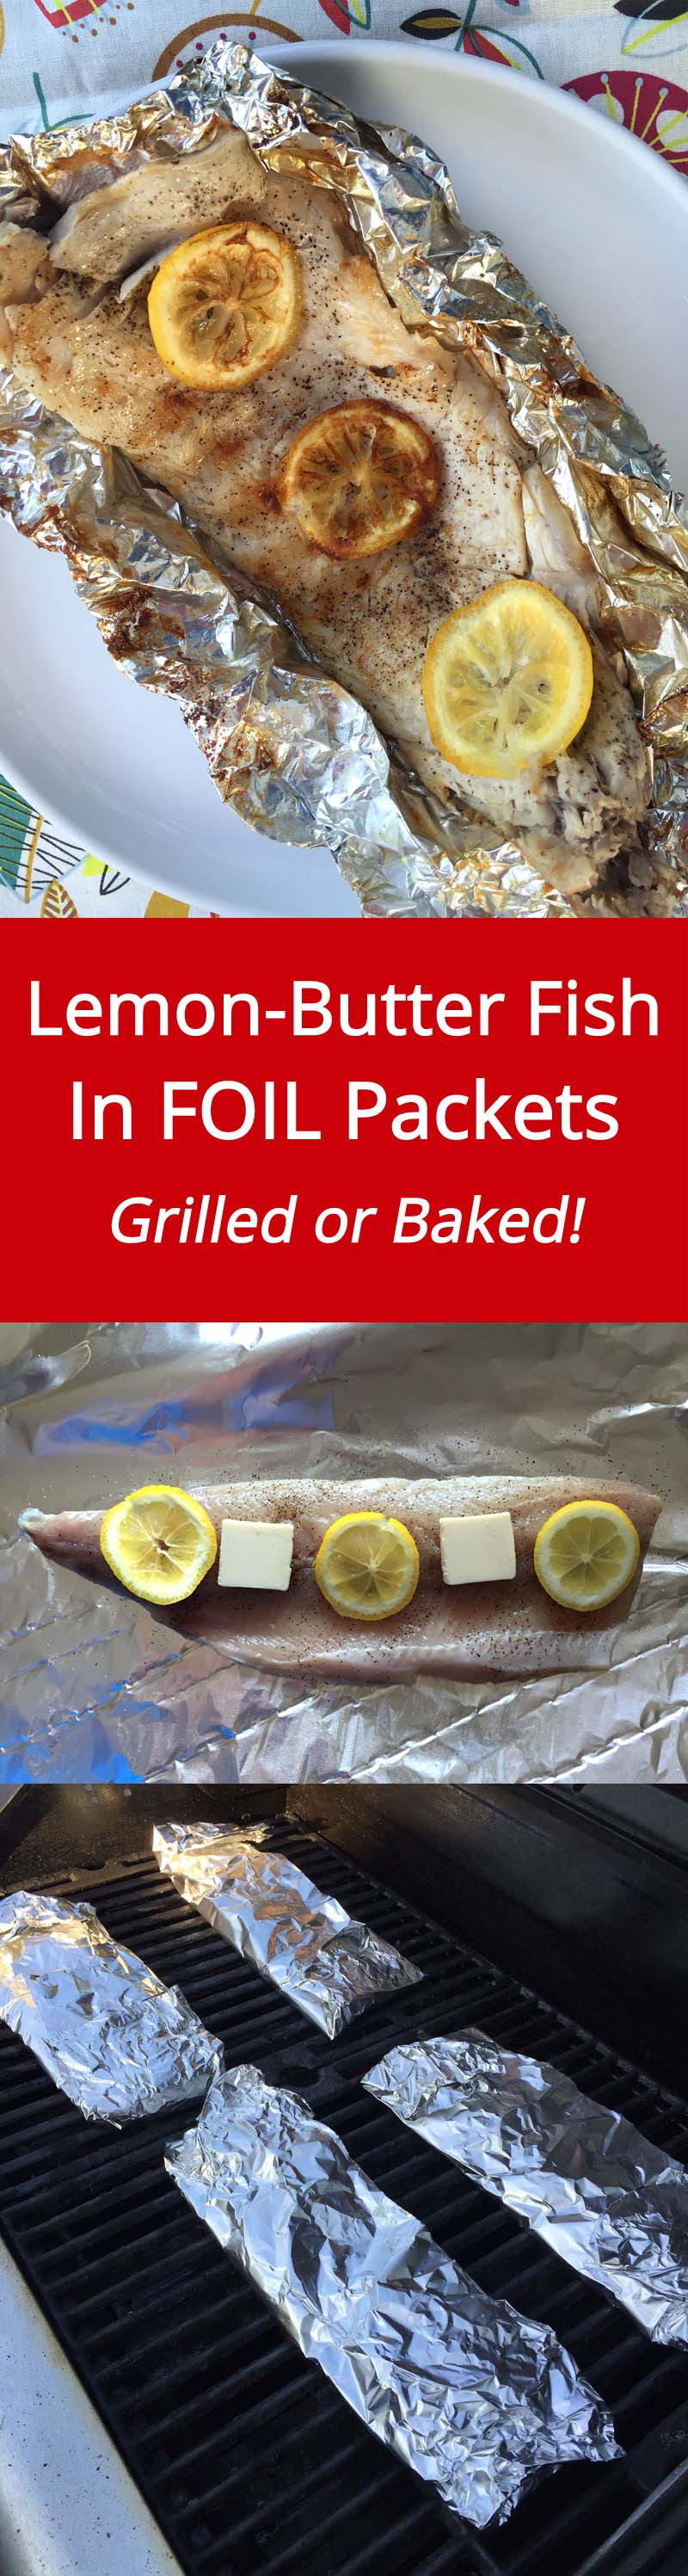 fish in foil packets recipe with lemon butter grilled or